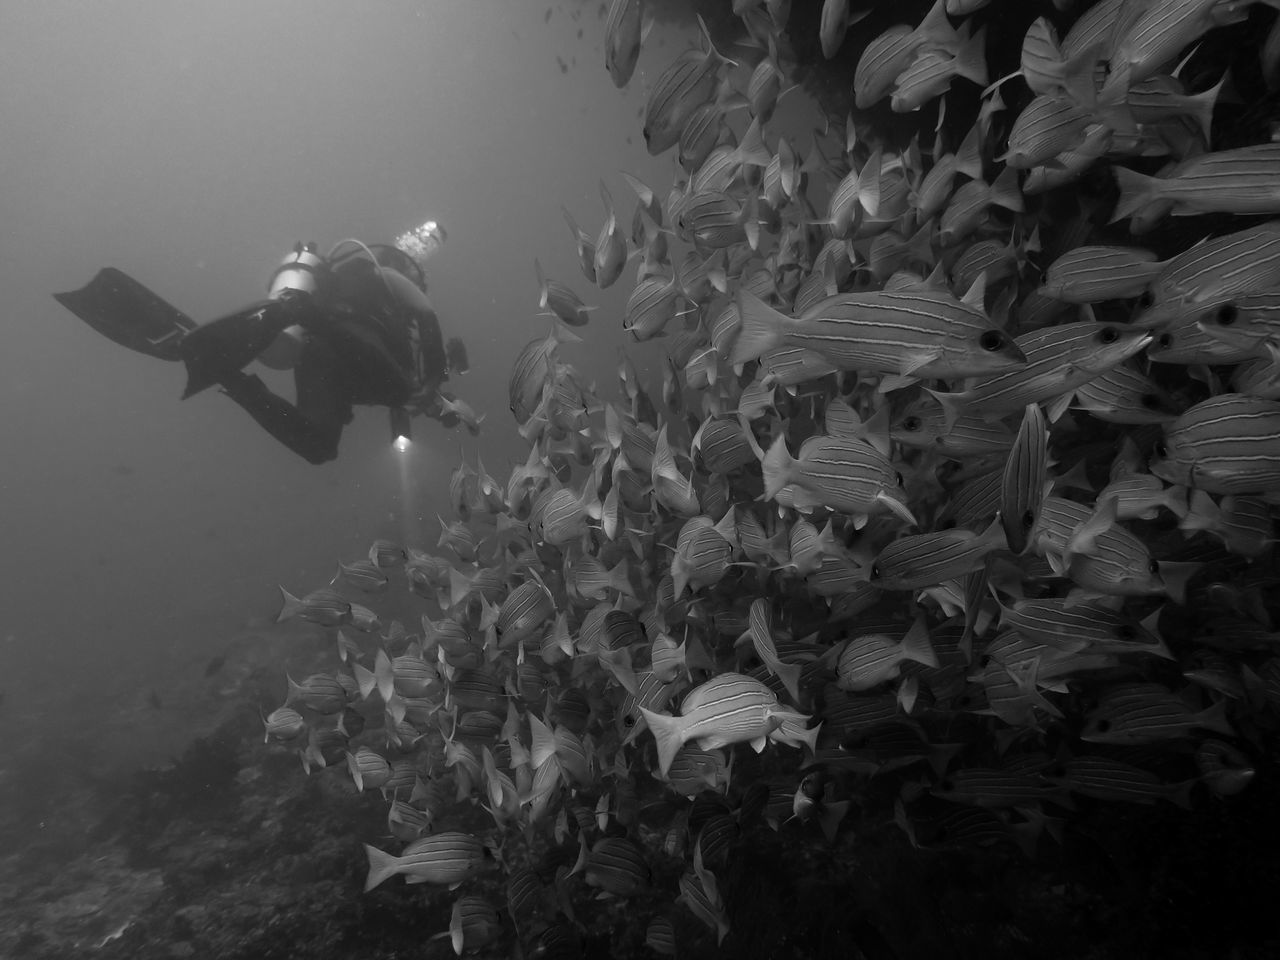 Diver with torch ahead while passing a shoal of snappers. Dive on the Maldives Islands. Animal Themes Black And White Day Diver Nature One Person Outdoors Scuba Diving Sea Life Shoal Of Fish Snappers Torchlight UnderSea Underwater Water